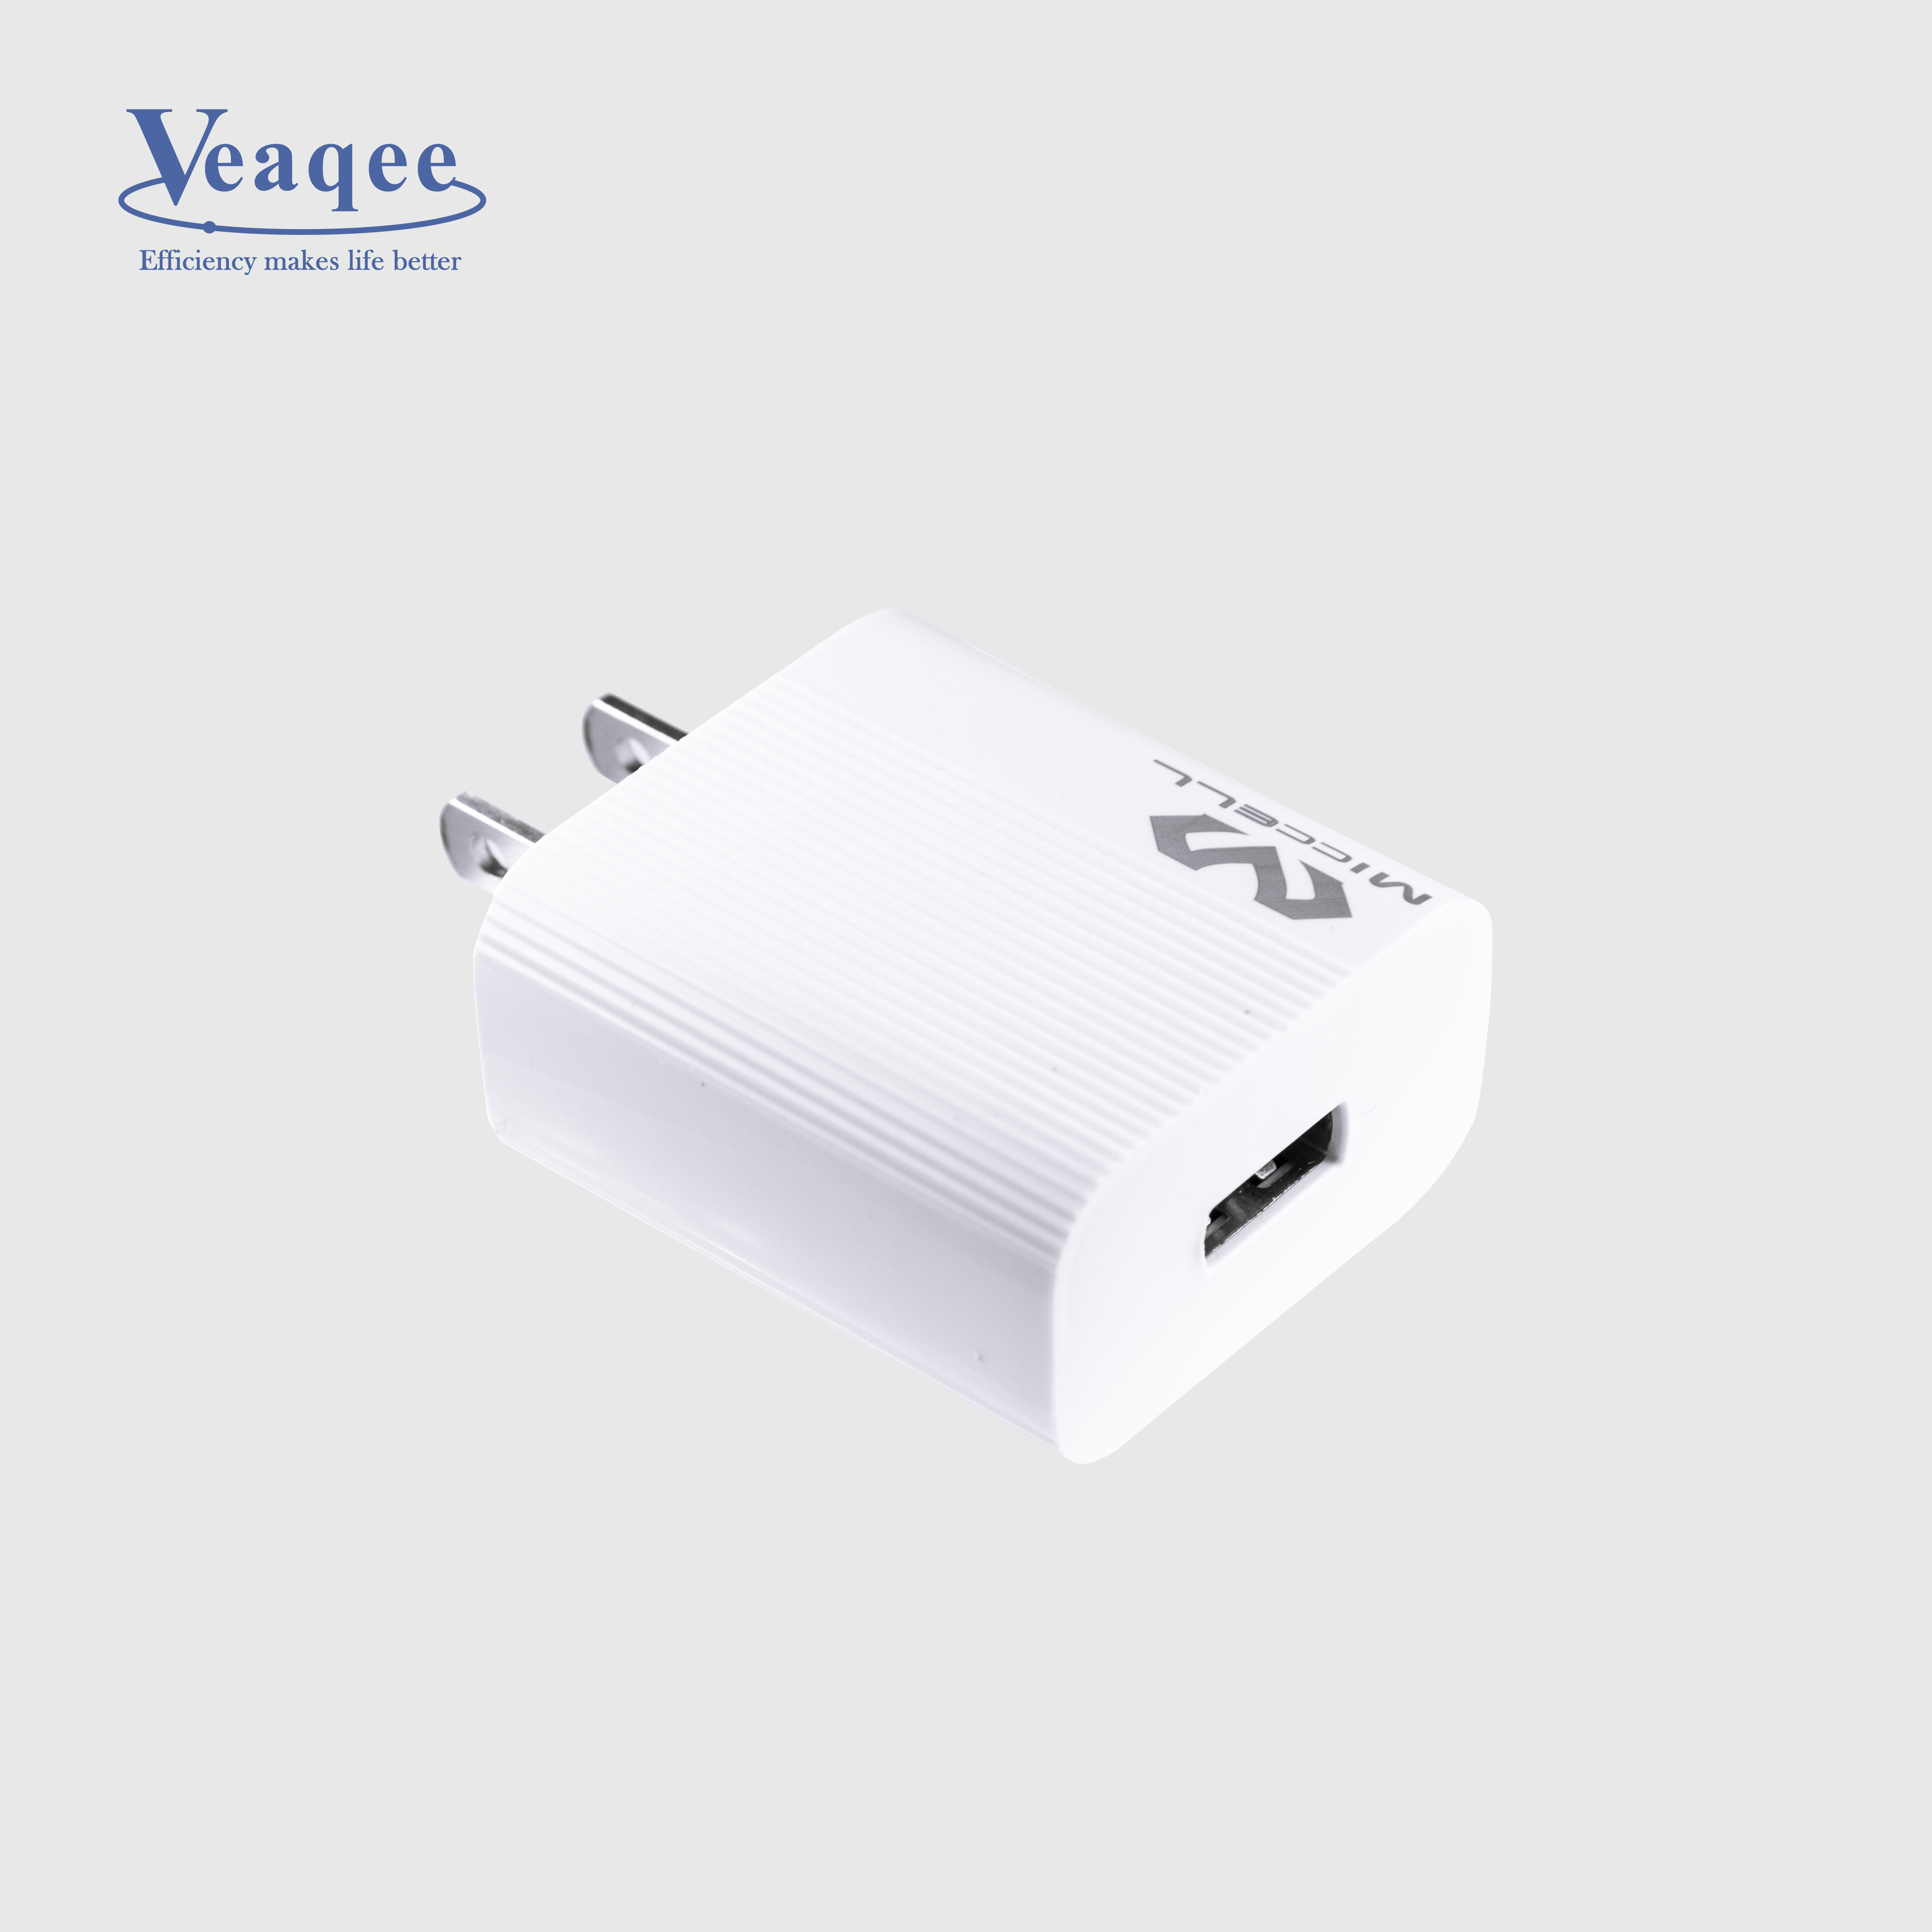 Veaqee usb mobile phone wall charger for android phones